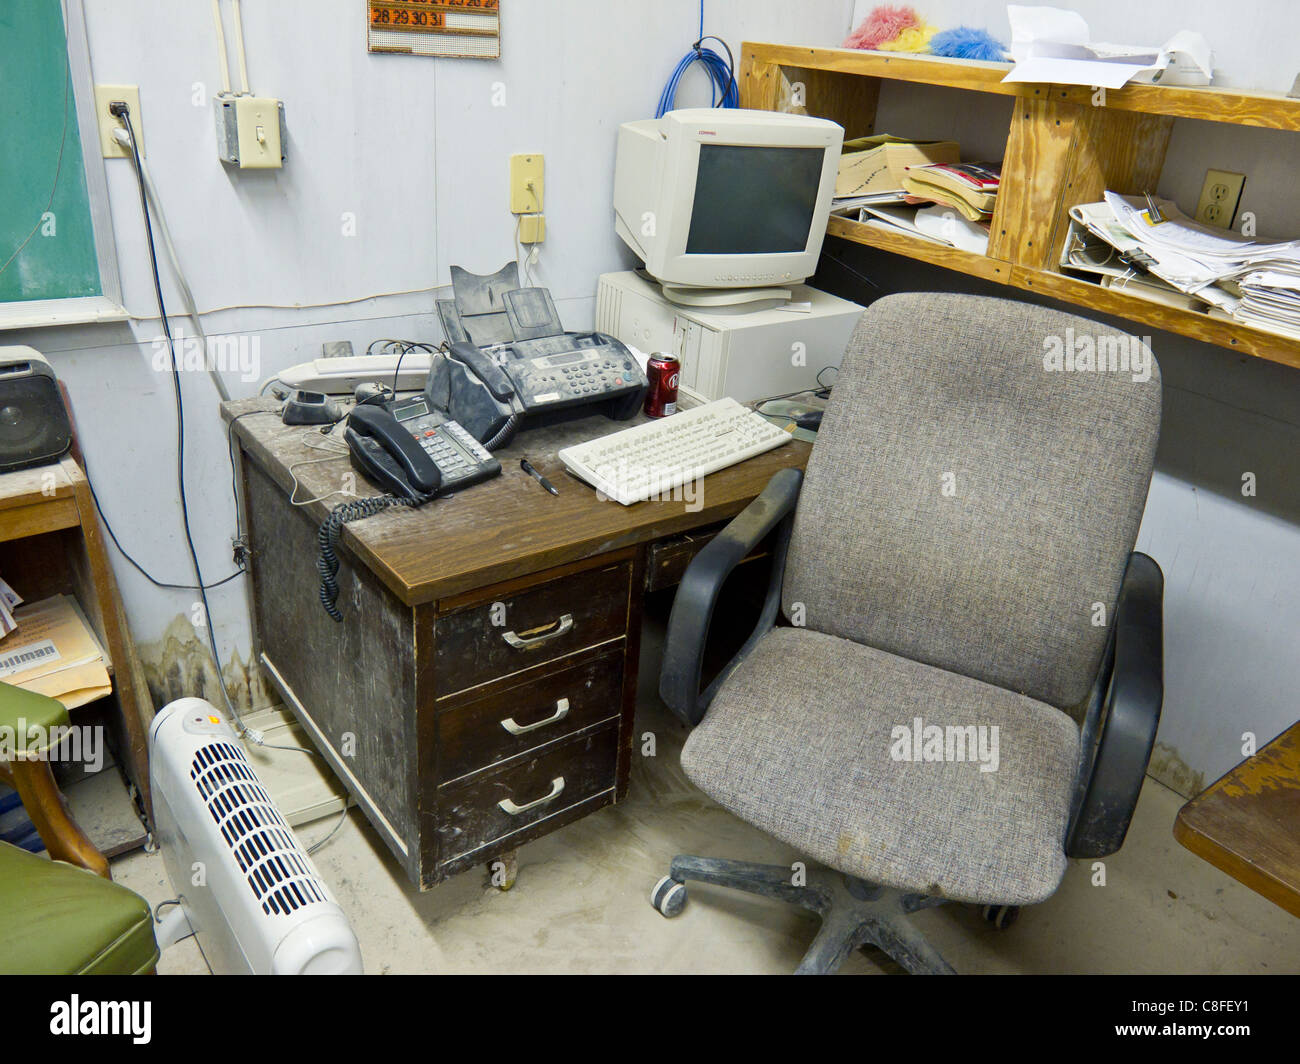 Very dirty and disorganized office in a concrete manufacturing office - Stock Image